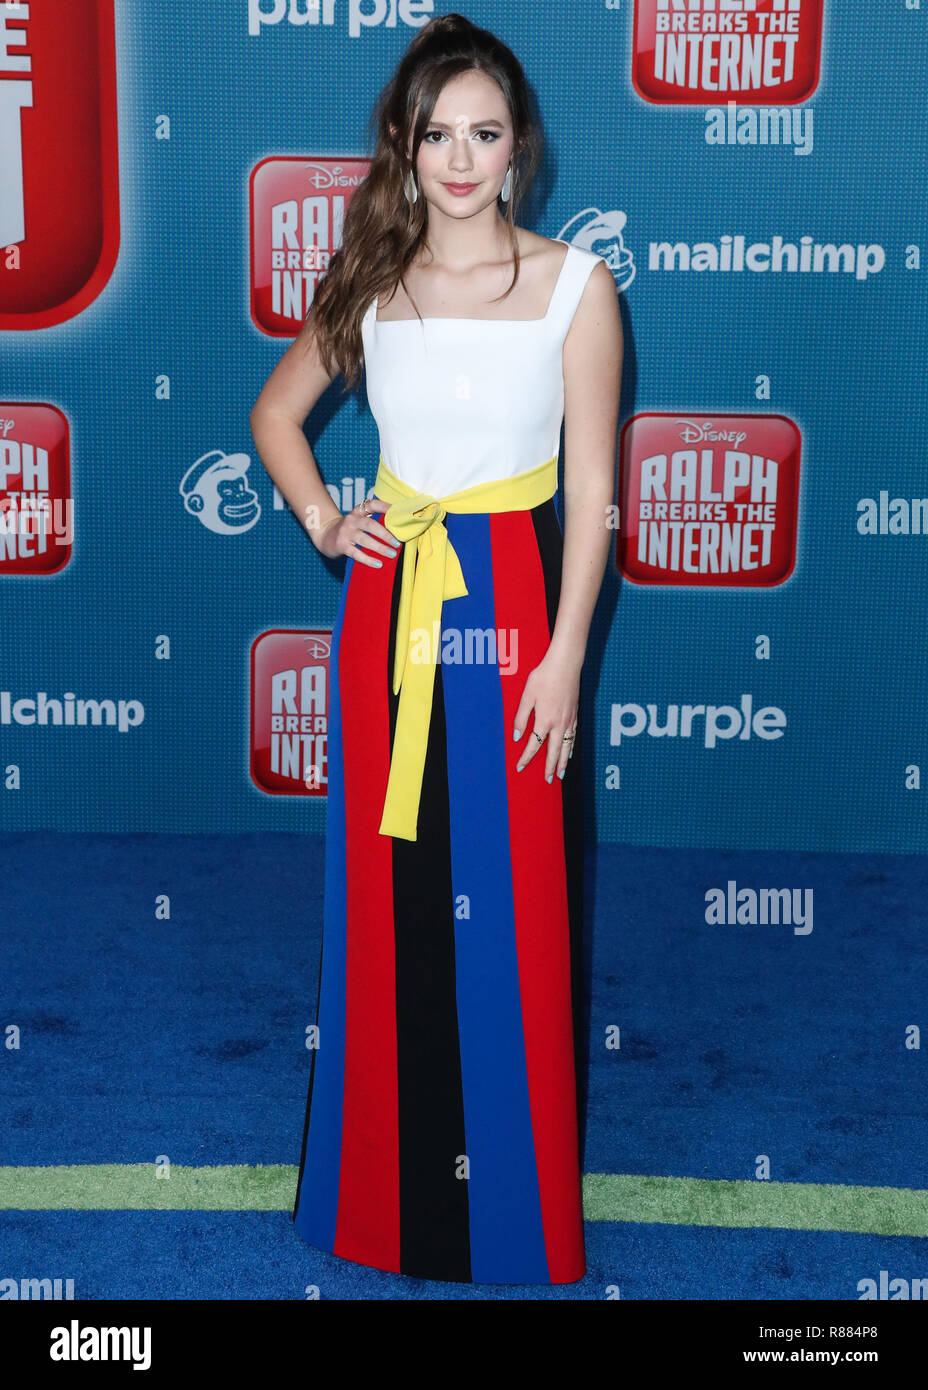 cc25eaf55dda HOLLYWOOD, LOS ANGELES, CA, USA - NOVEMBER 05: Actress Olivia Sanabia  wearing